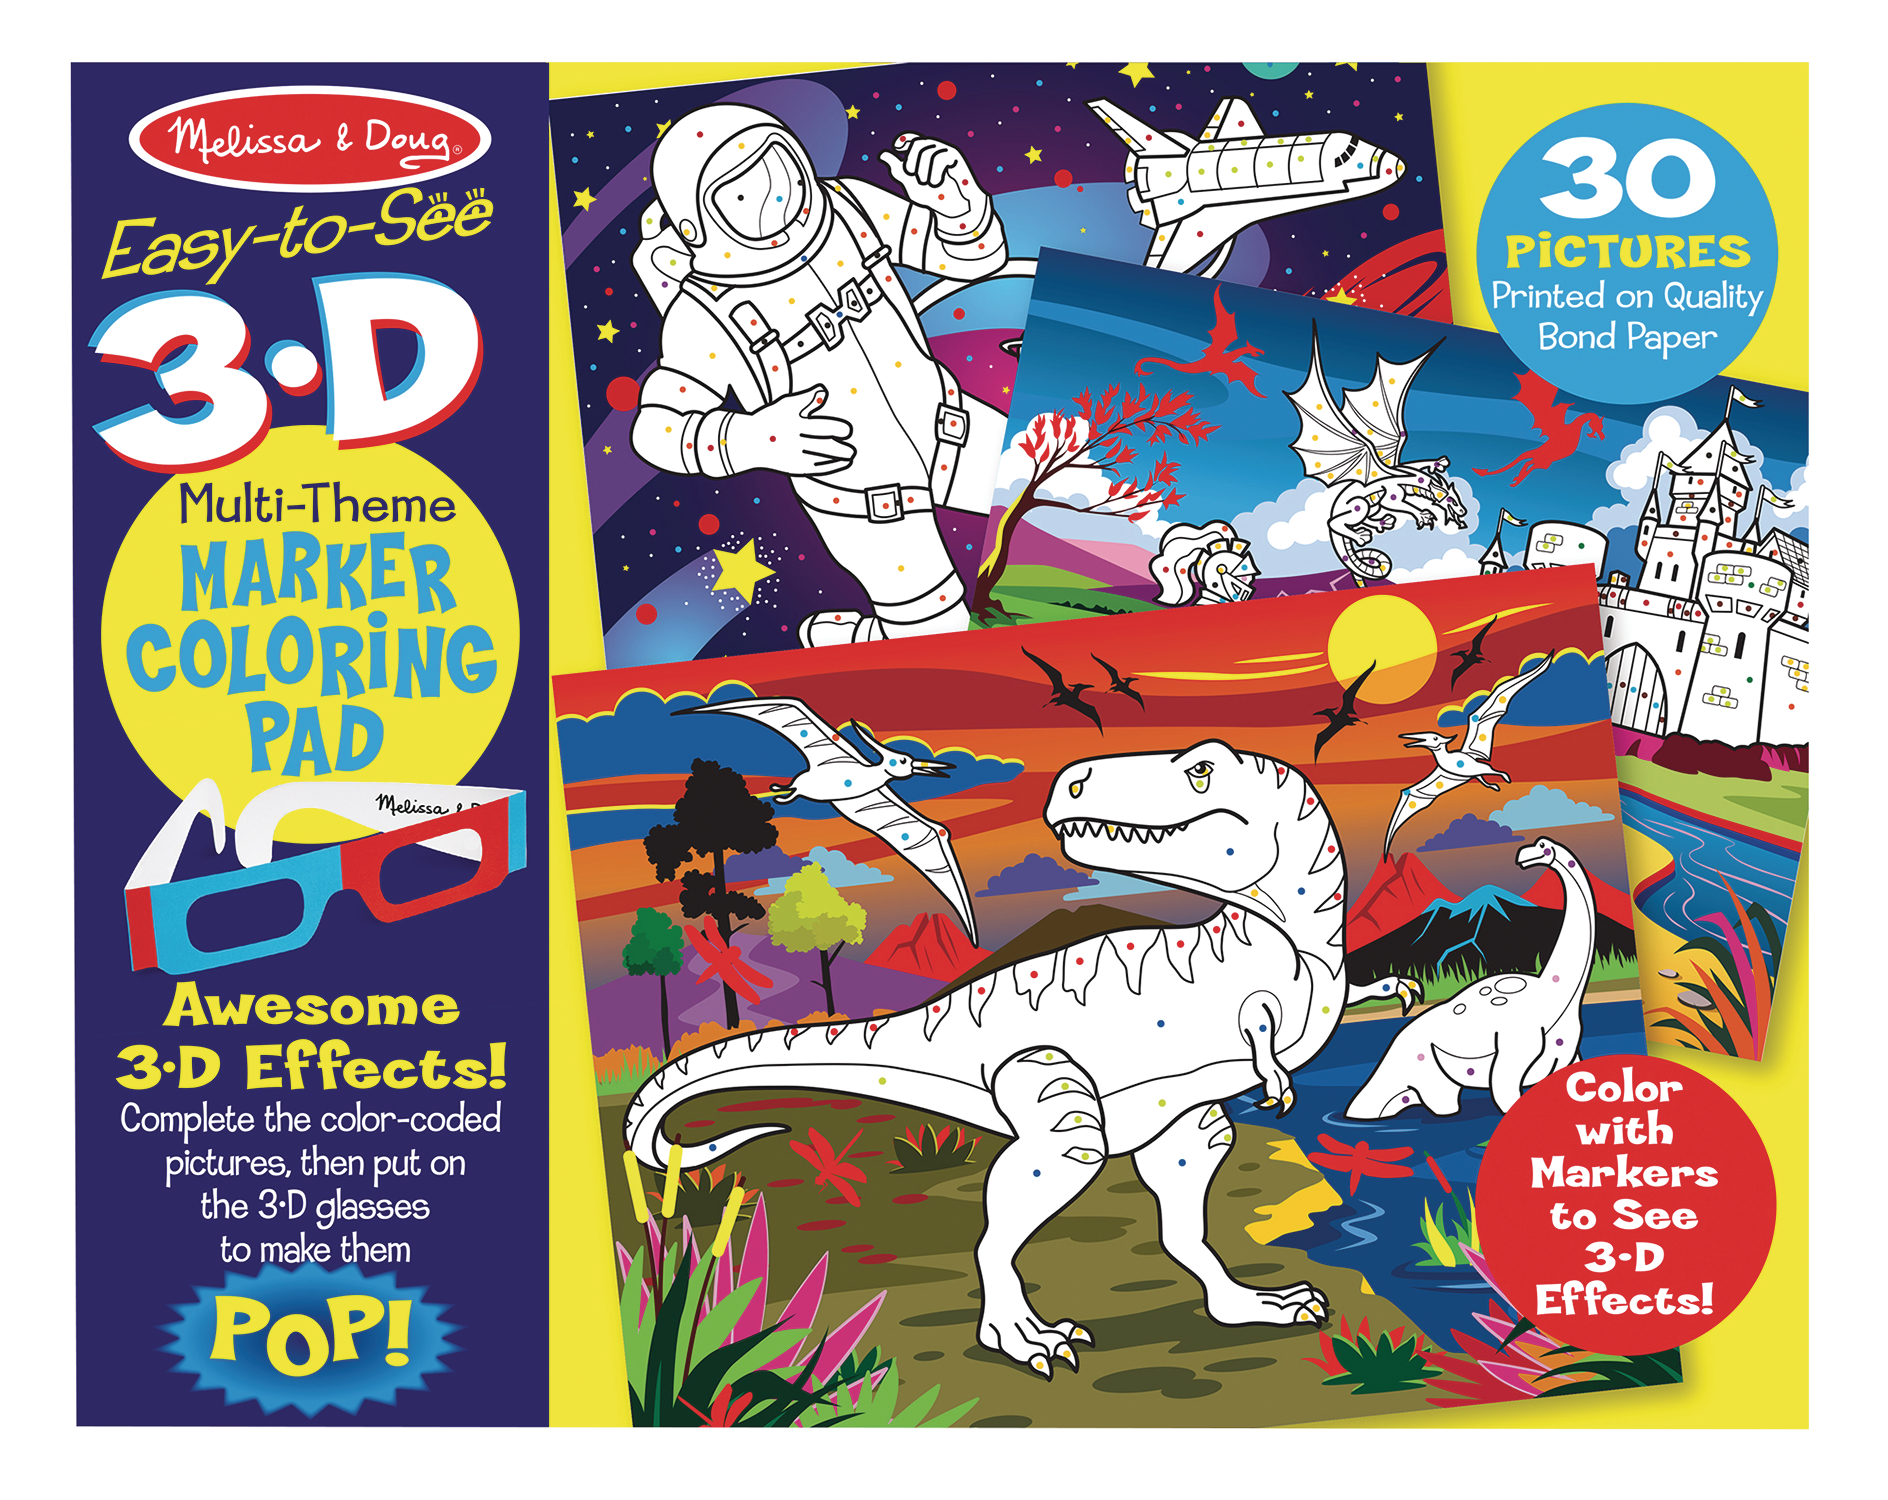 JAN188013 - MELISSA & DOUG 3D COLORING BOOK - Previews World